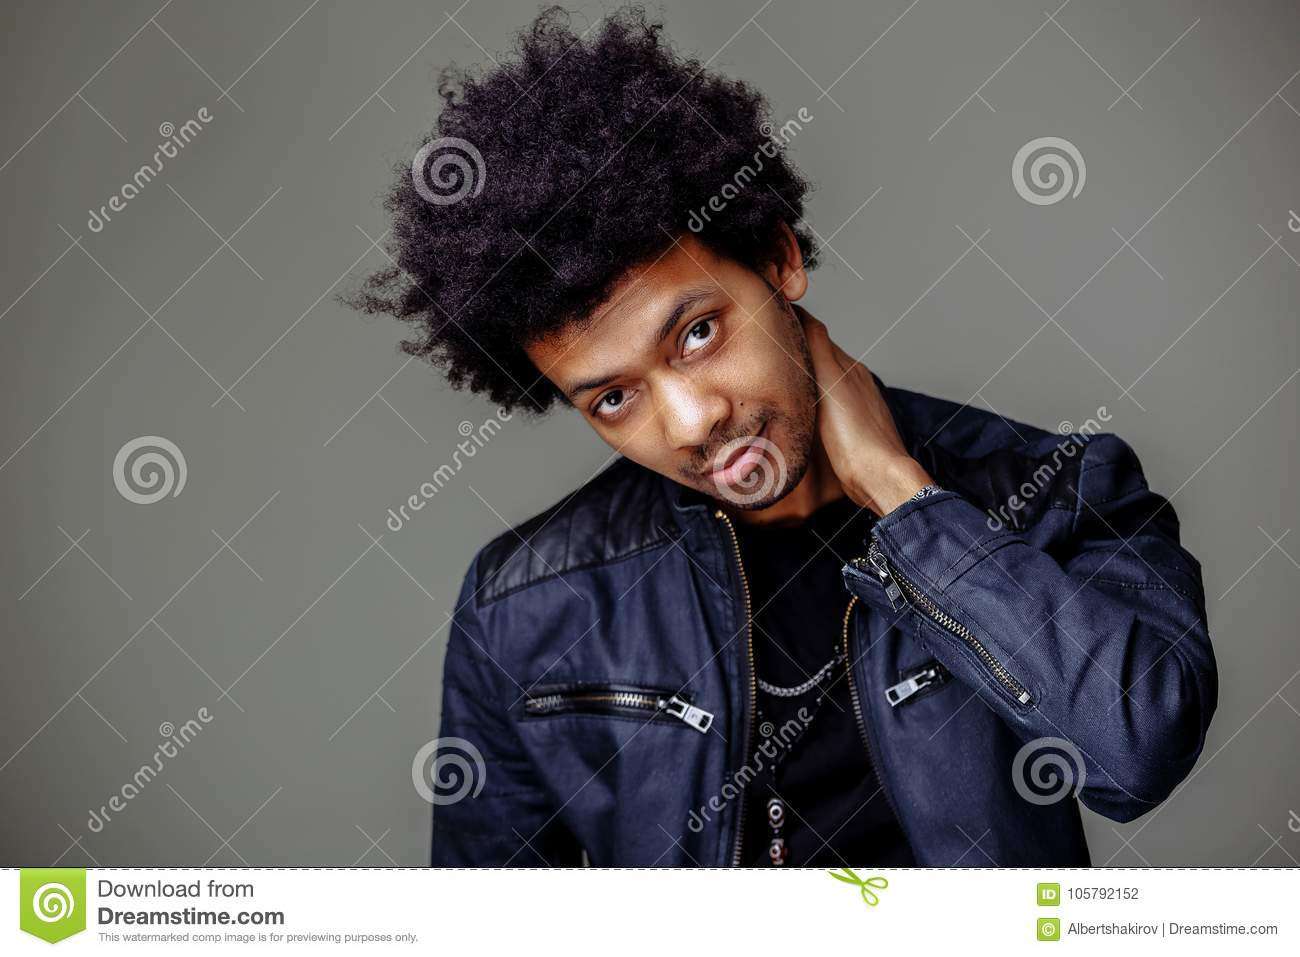 Guy With African Hairstyle And Dark Skin Looking Cheerfully ...